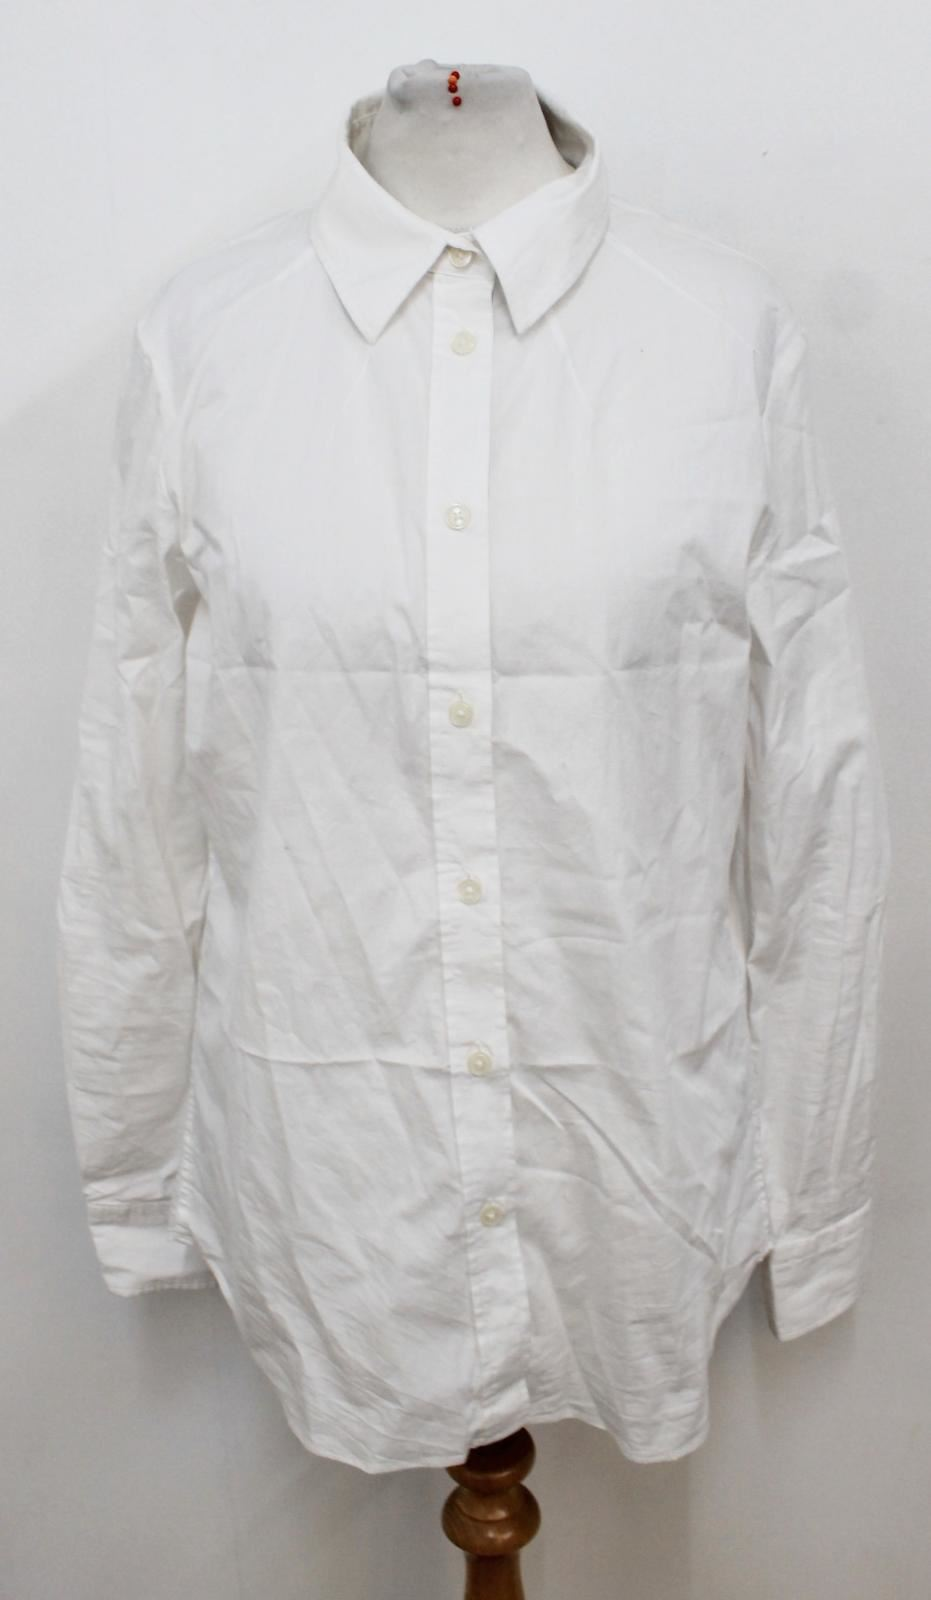 Neck Shirt Formal Jaeger White Long Cotton Button Up Ladies Collar Uk10 Sleeved 78wvn7Uxq